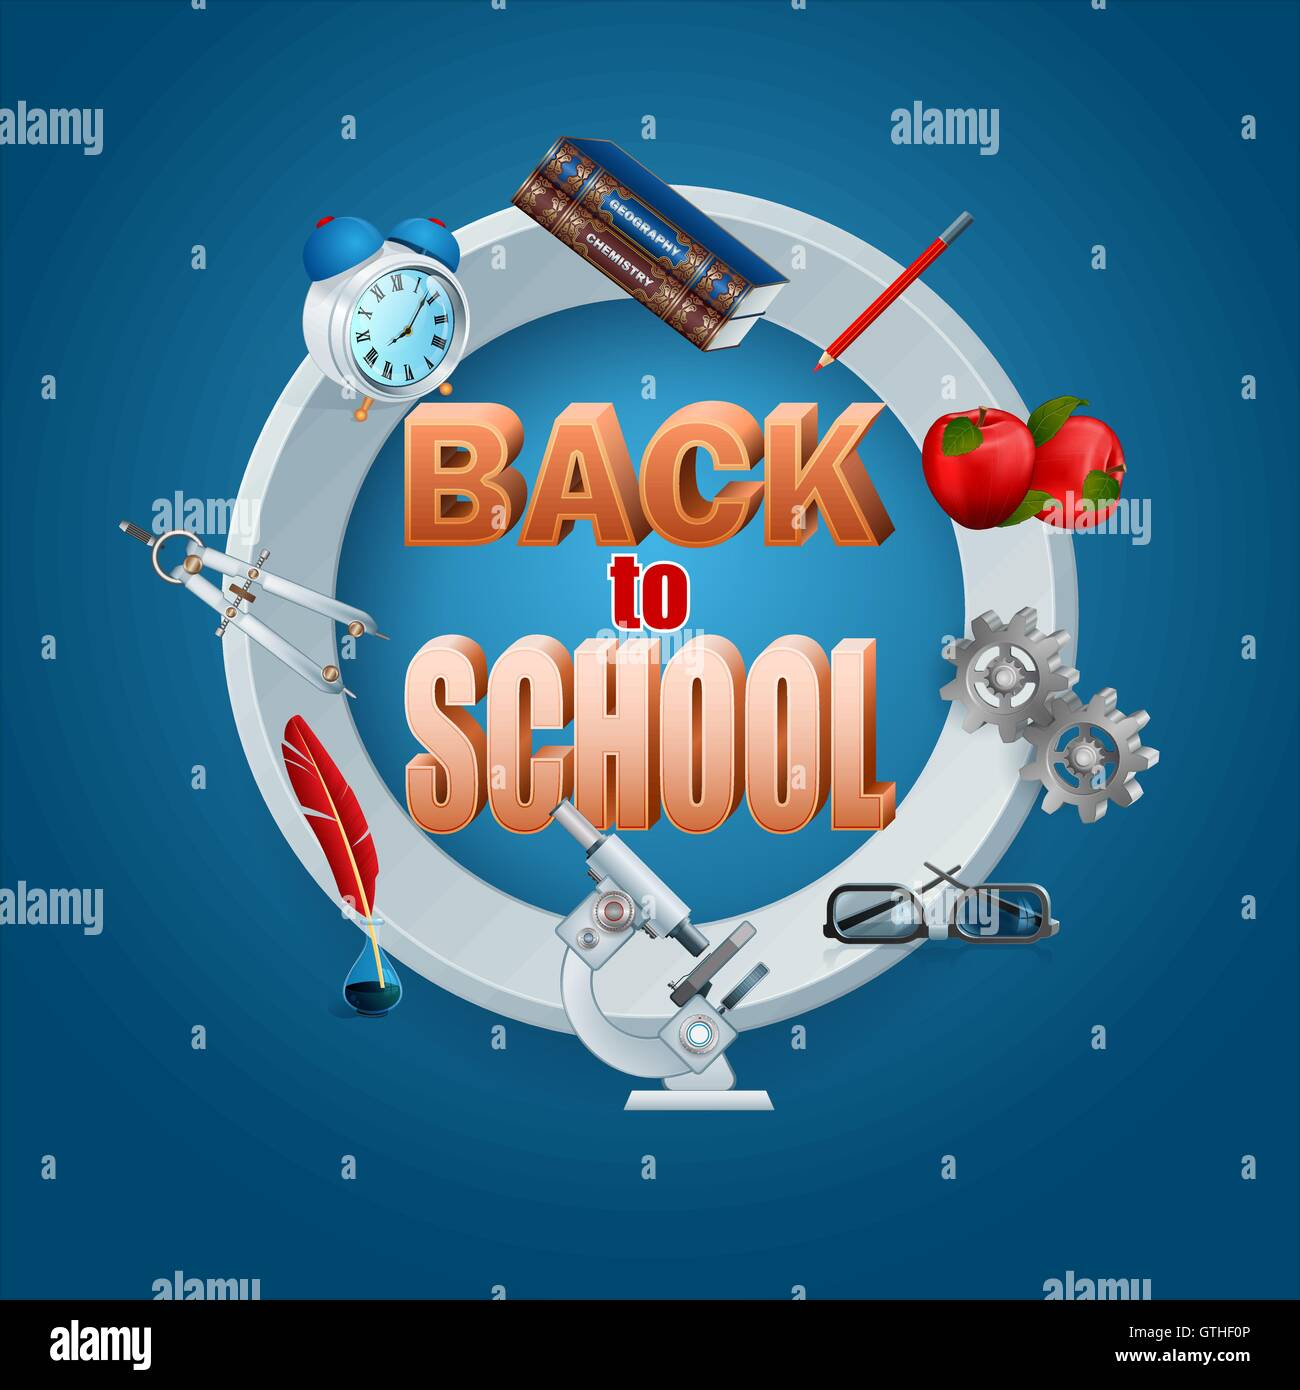 Back to school - Stock Vector